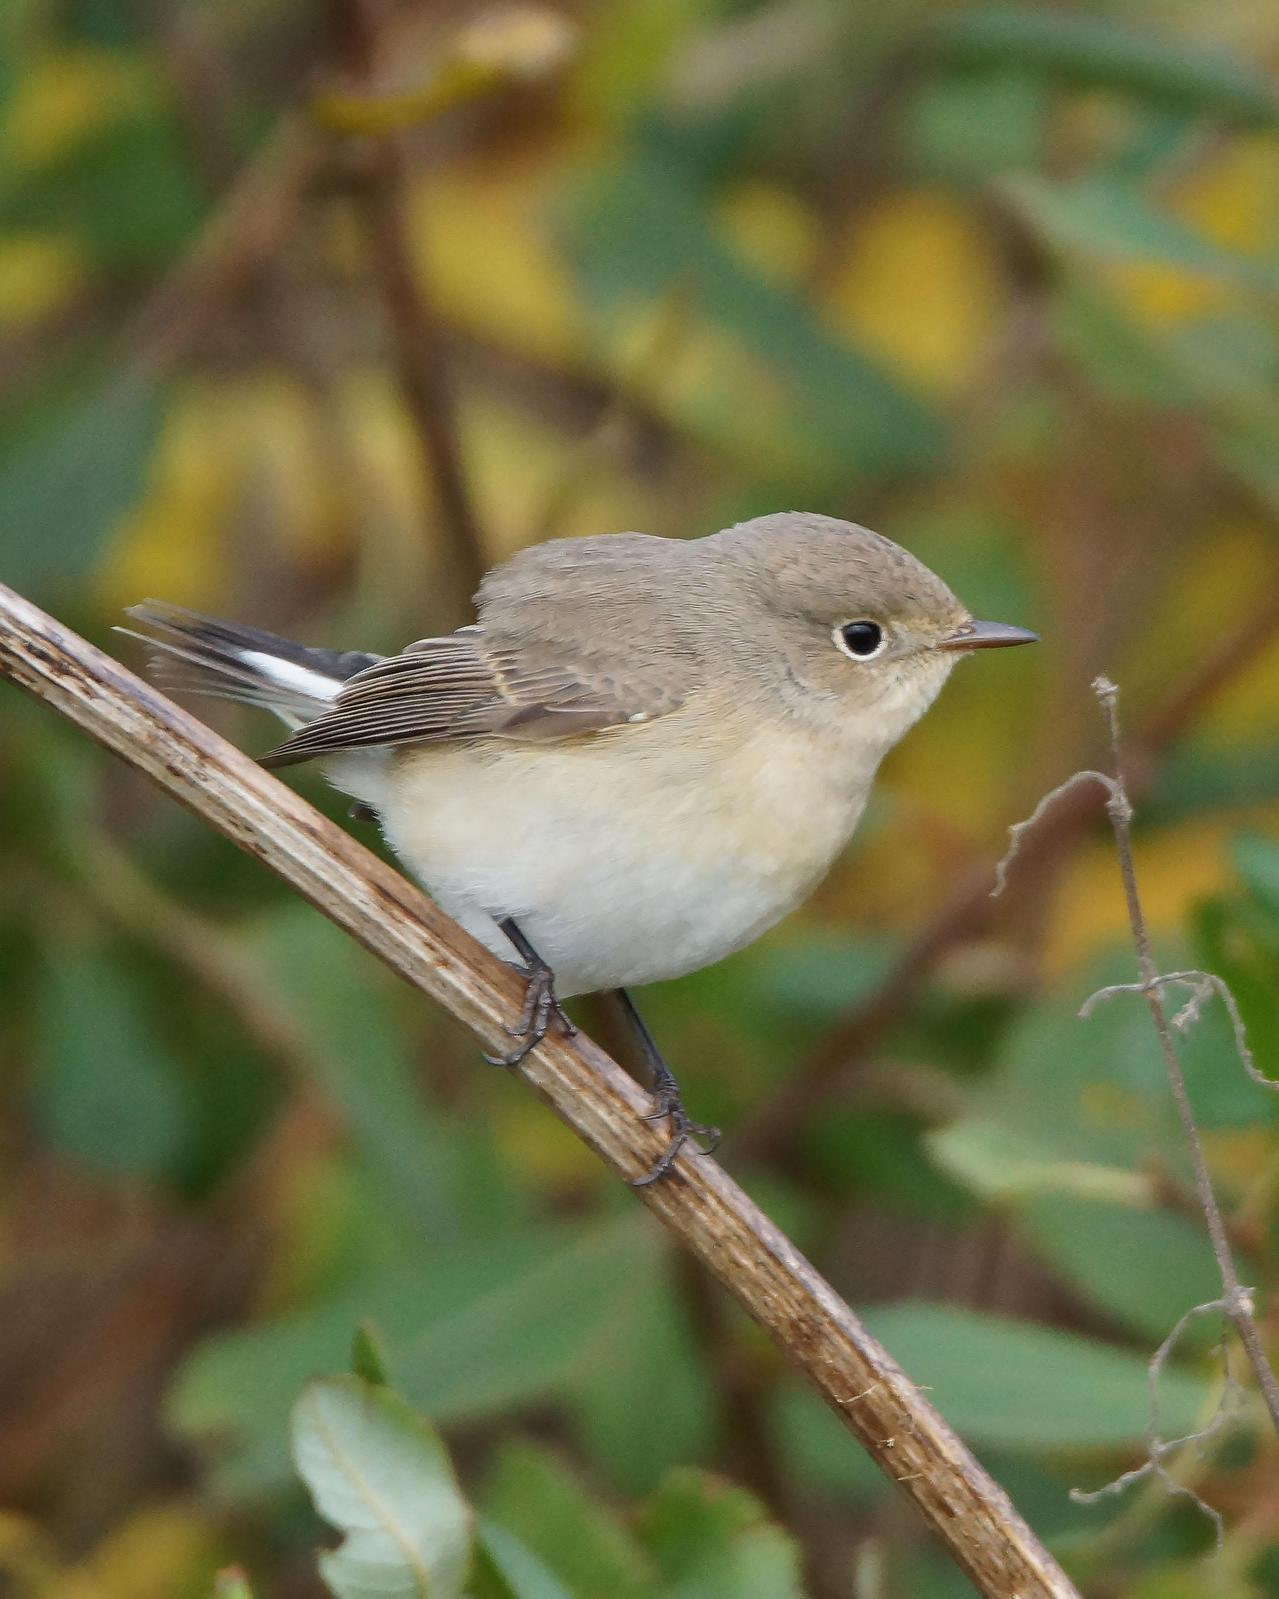 Red-breasted Flycatcher Photo by Steve Percival